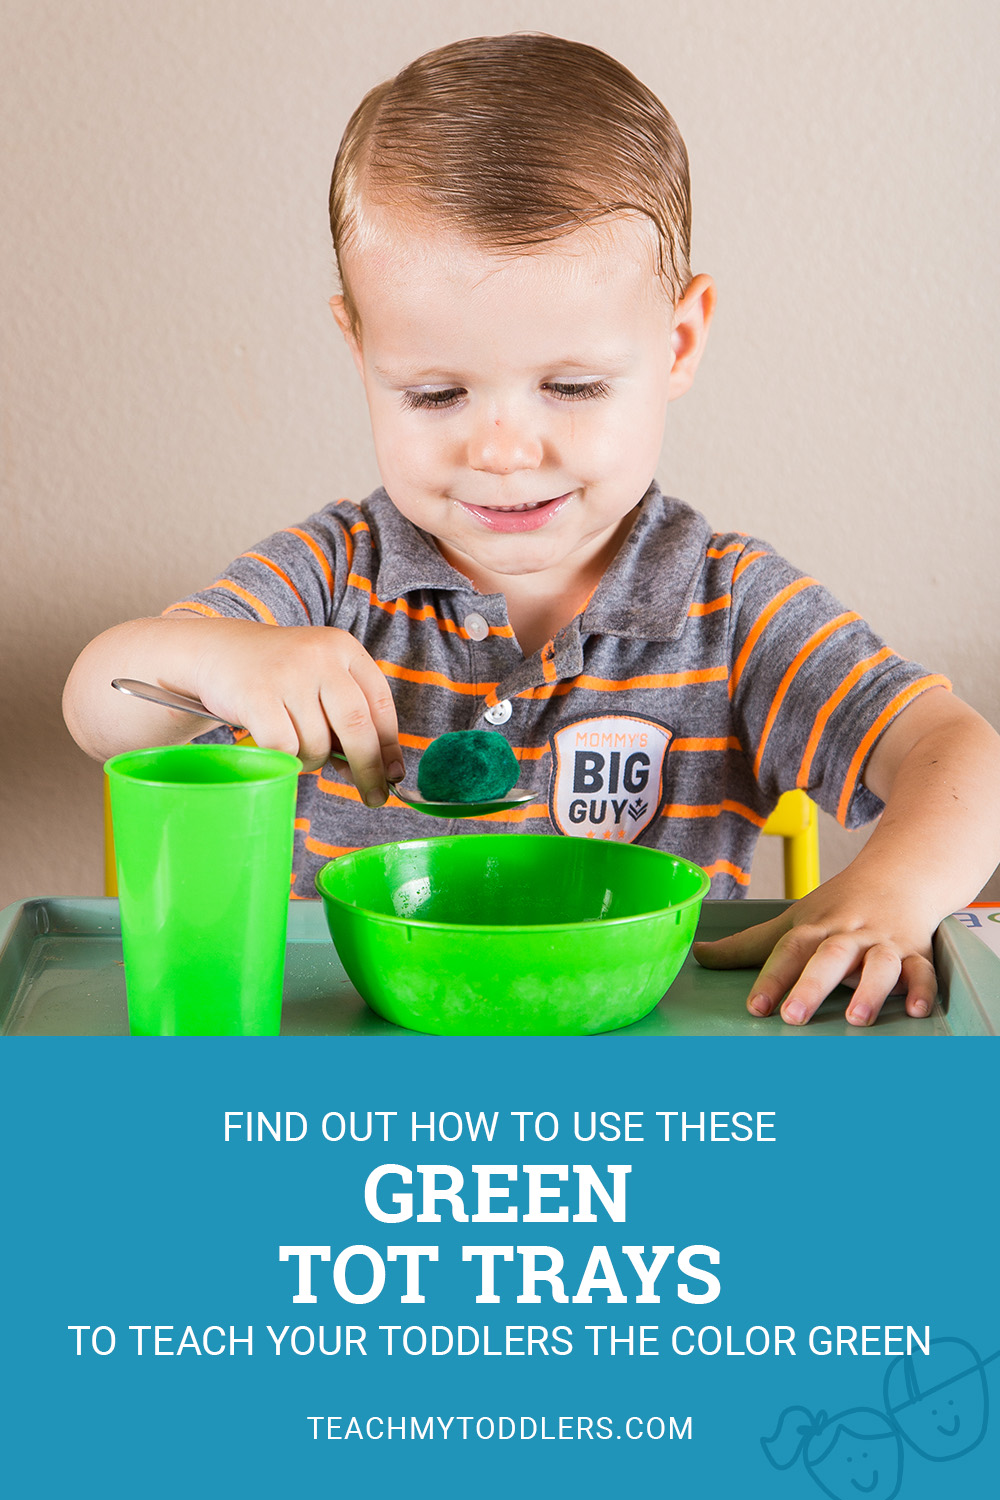 Find out how to use these green tot trays to teach your toddlers the color green